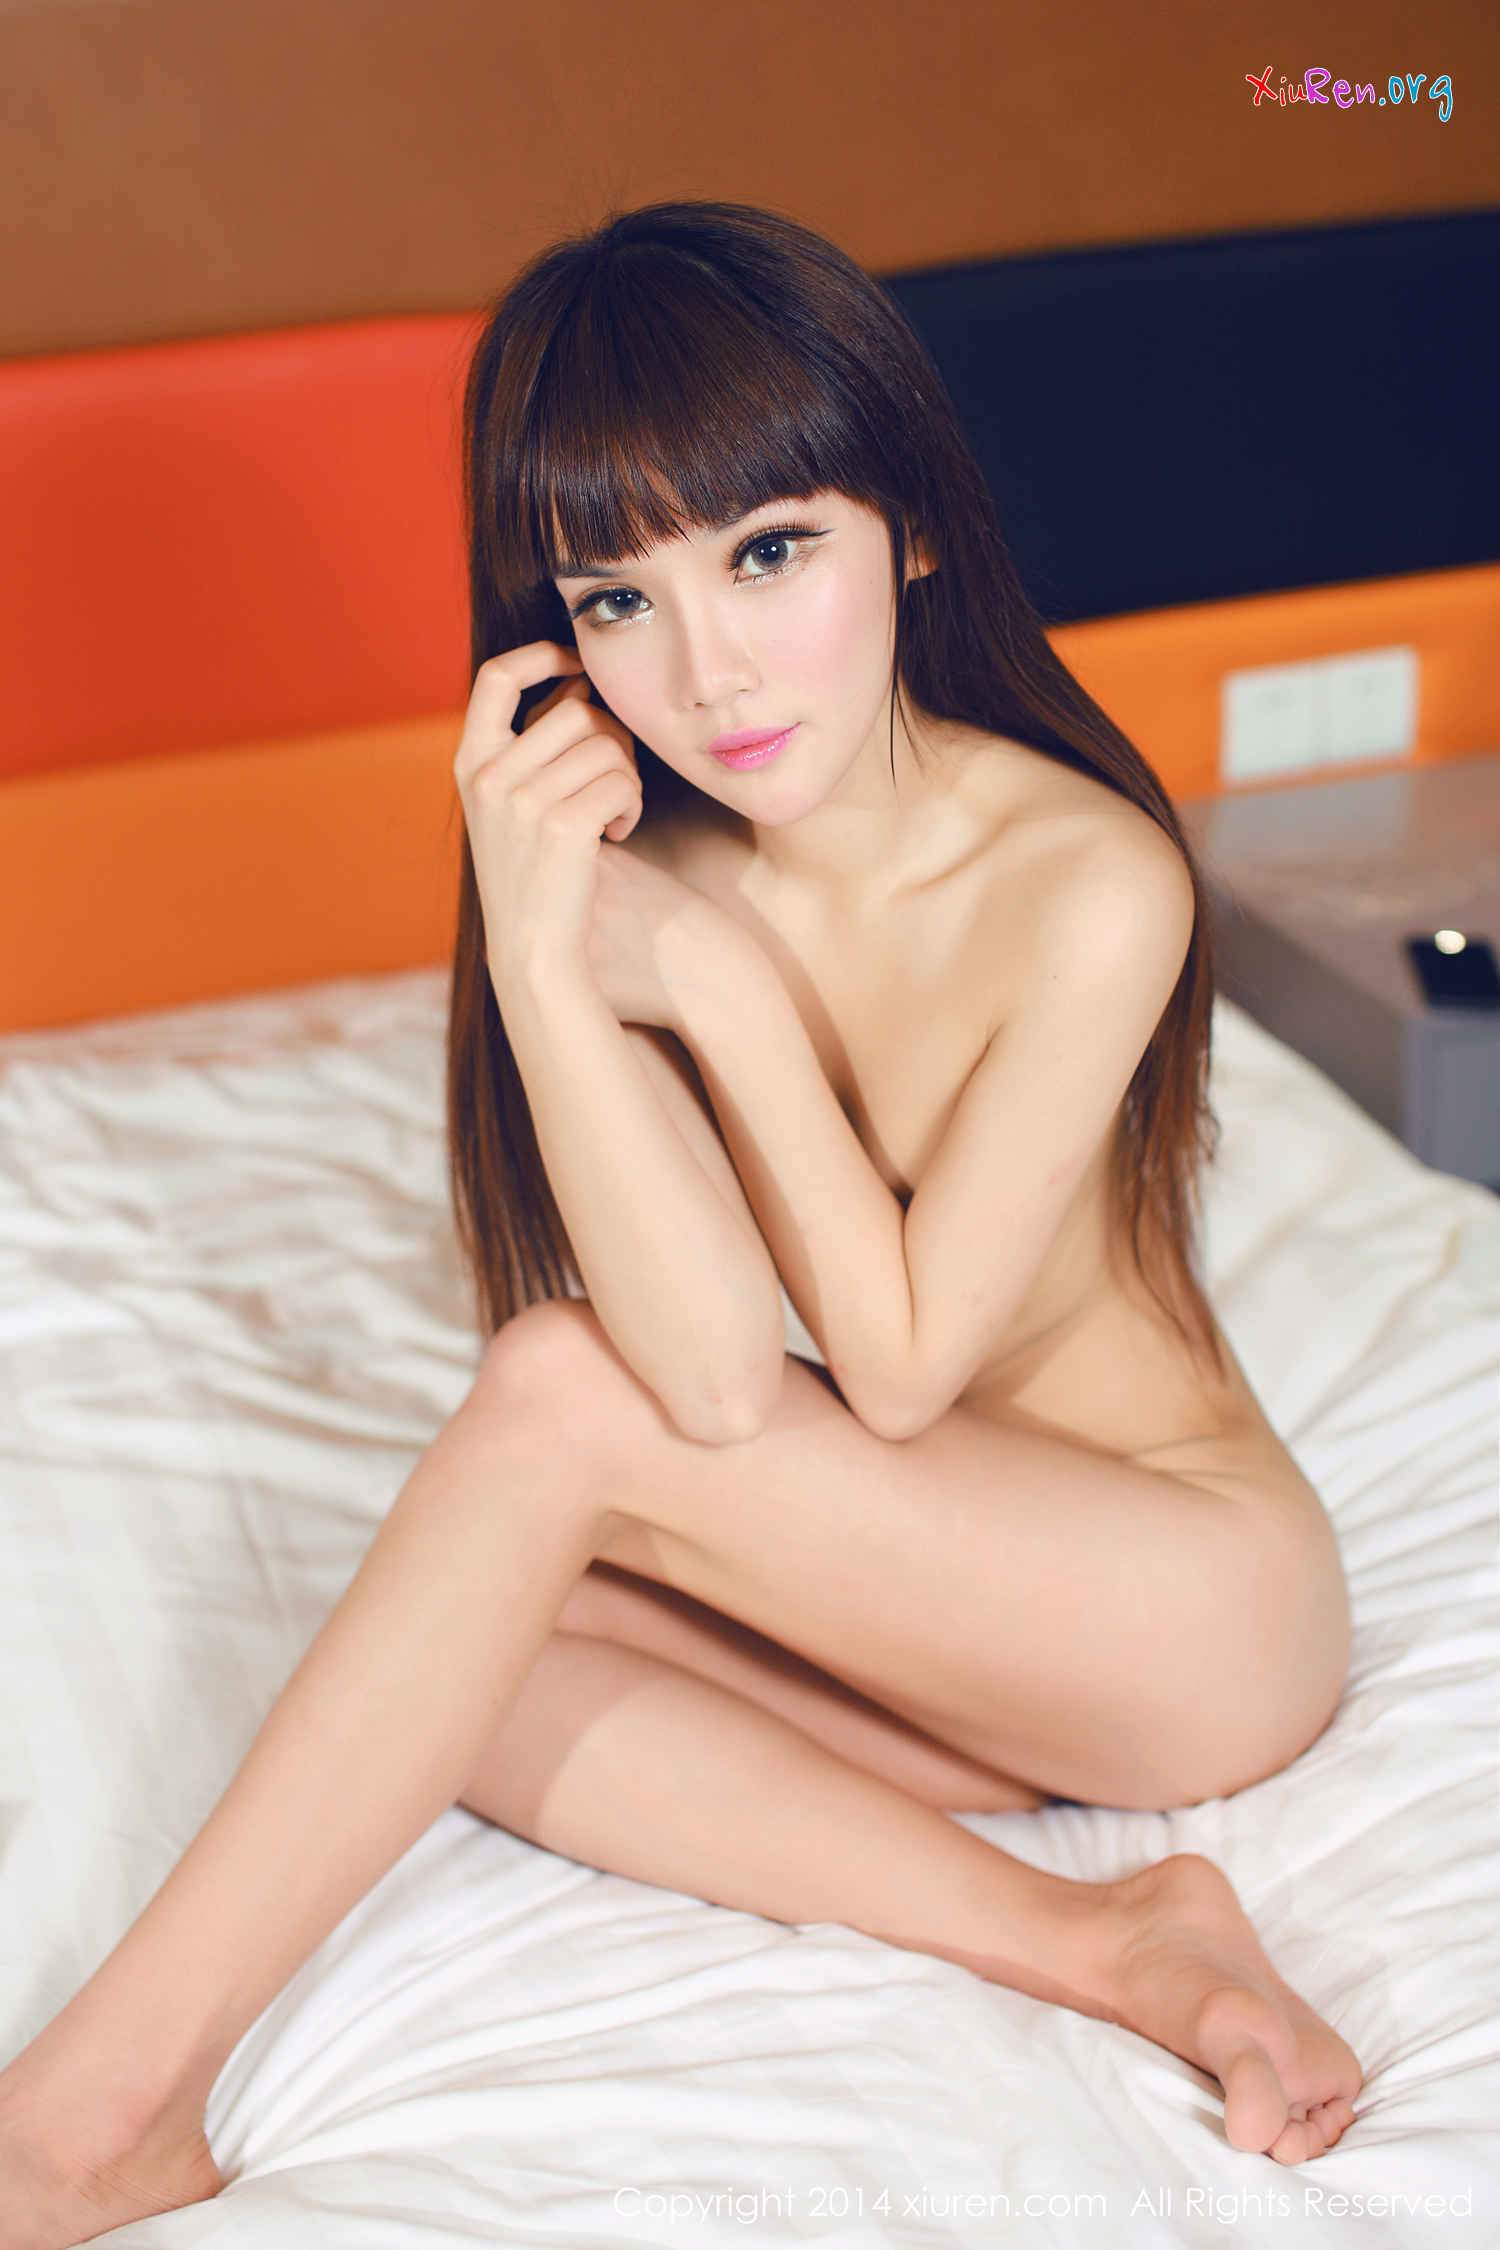 832 Seconds Hot Korean Teen